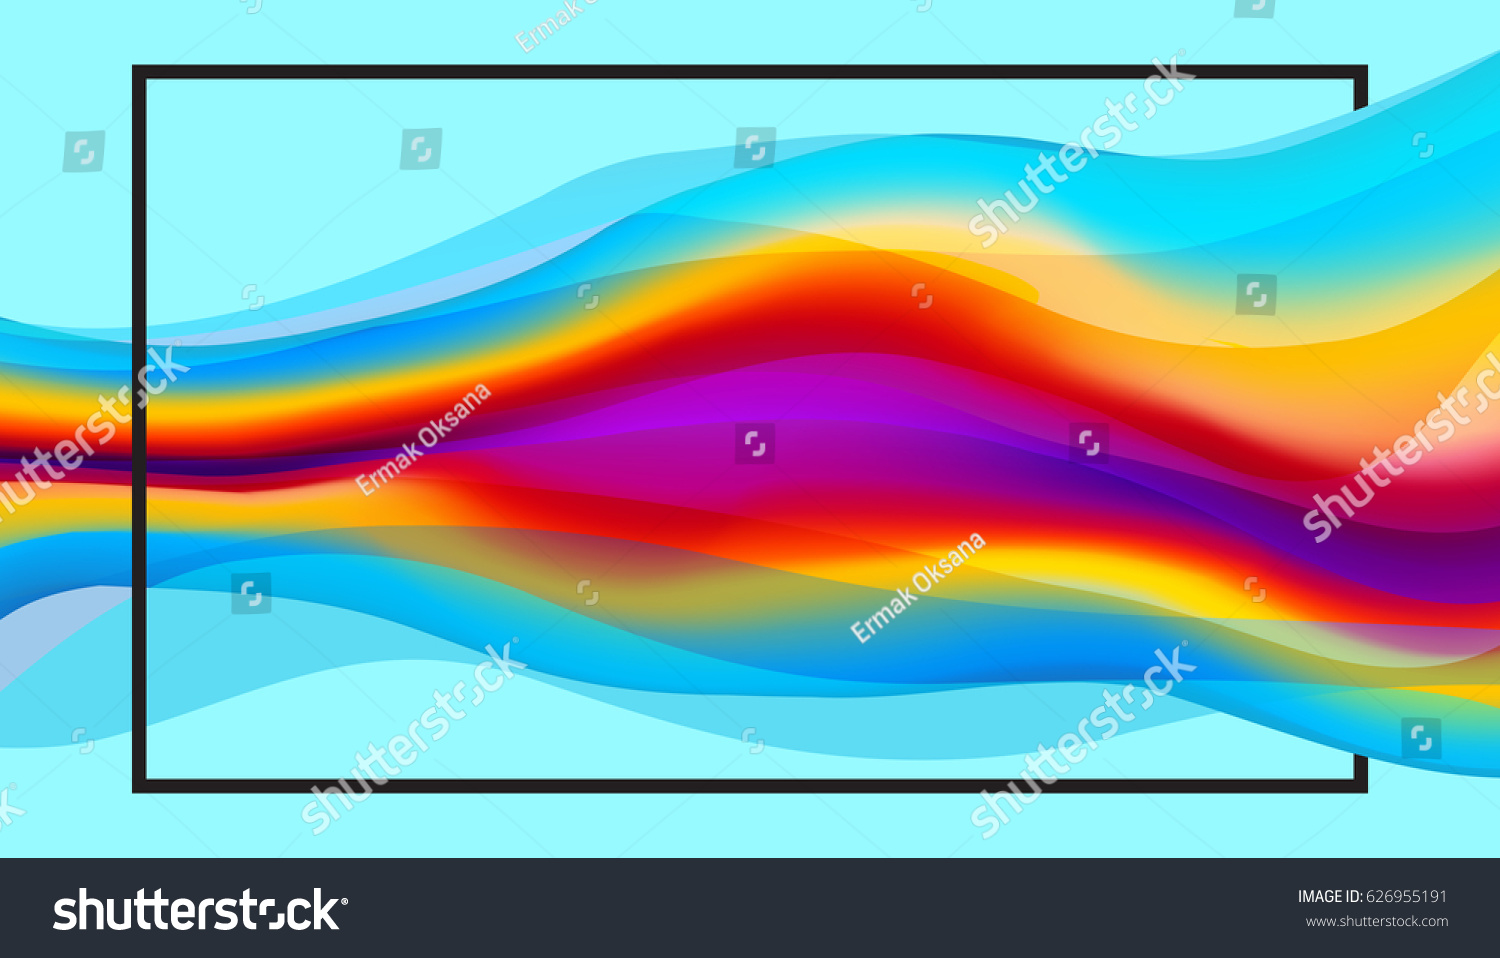 Pics photos 3d colorful abstract background design - Colorful 3d Wavy Abstract Background Trendy Vector Texture With Space For Text For Design